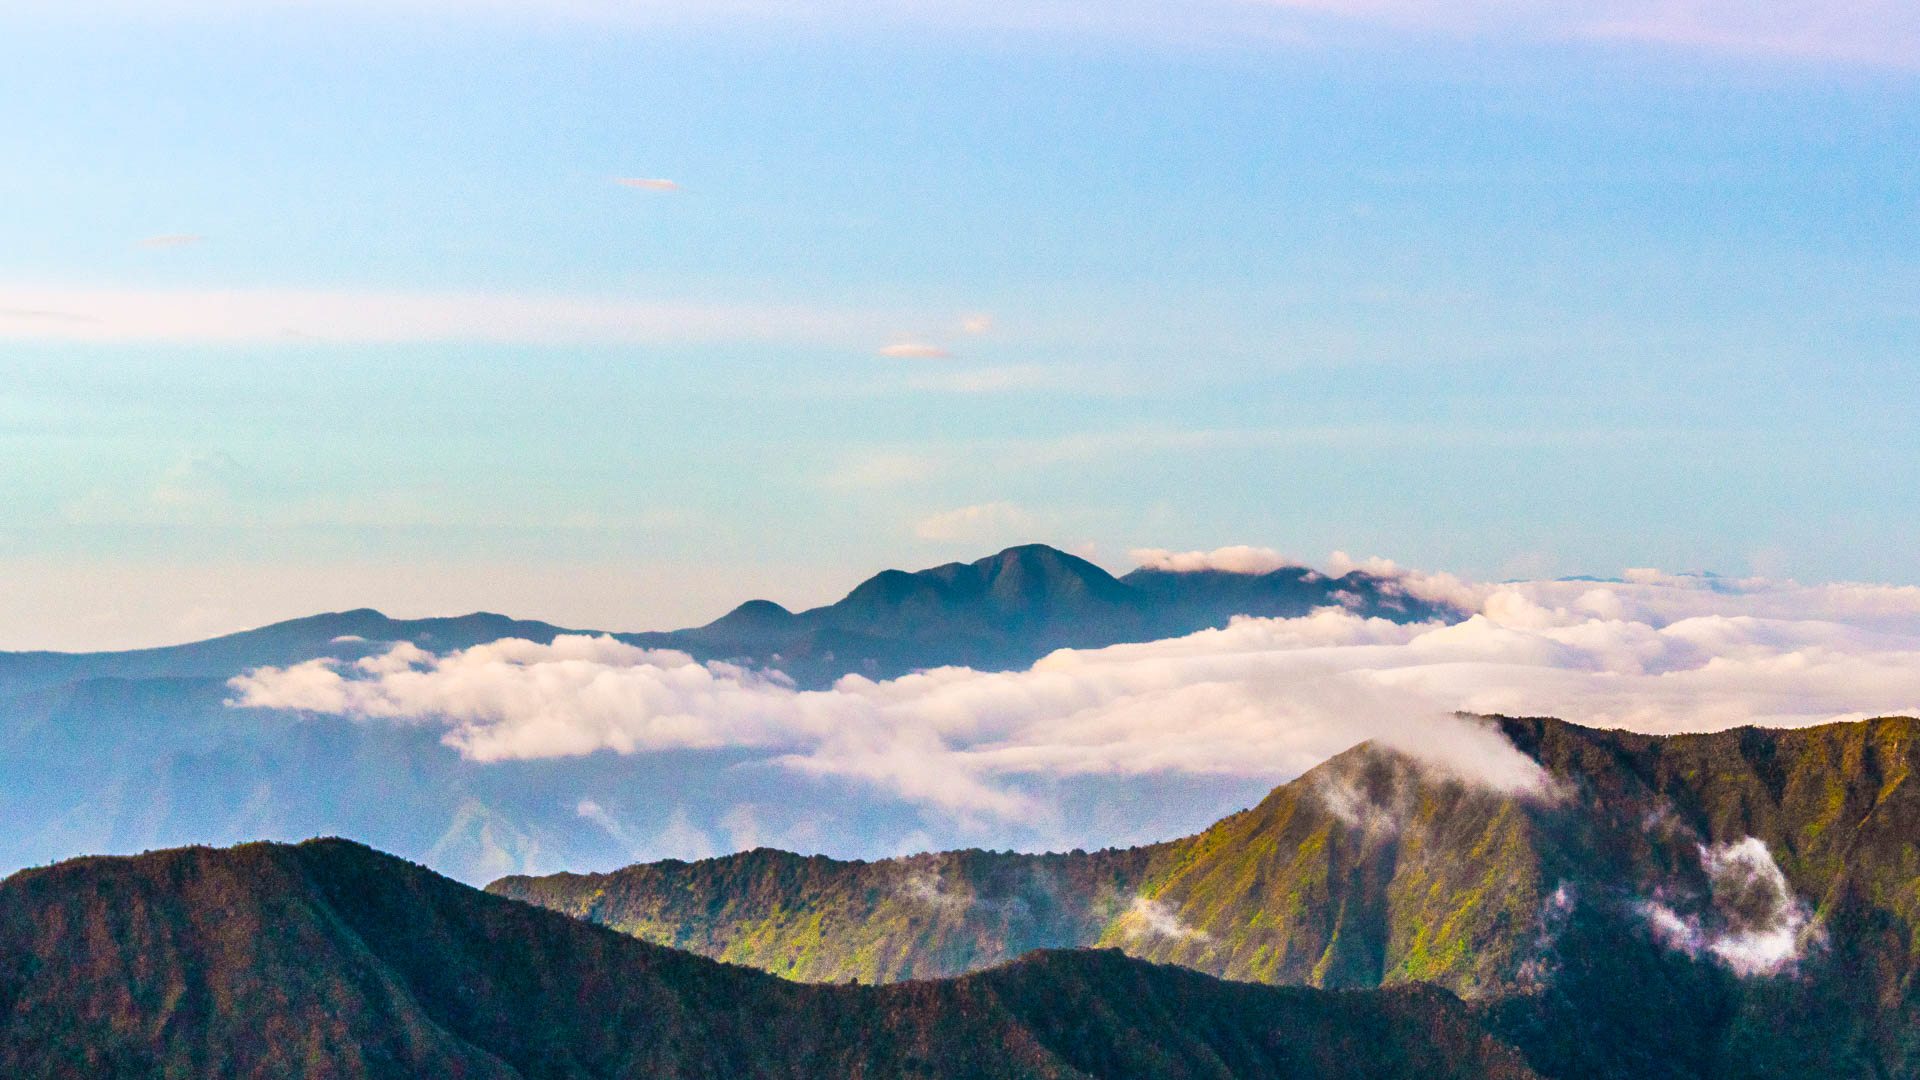 The jagged peaks of mountain (Mount Kalatungan, one of the highest mountains in the Philippines) rises high above a layer of white clouds